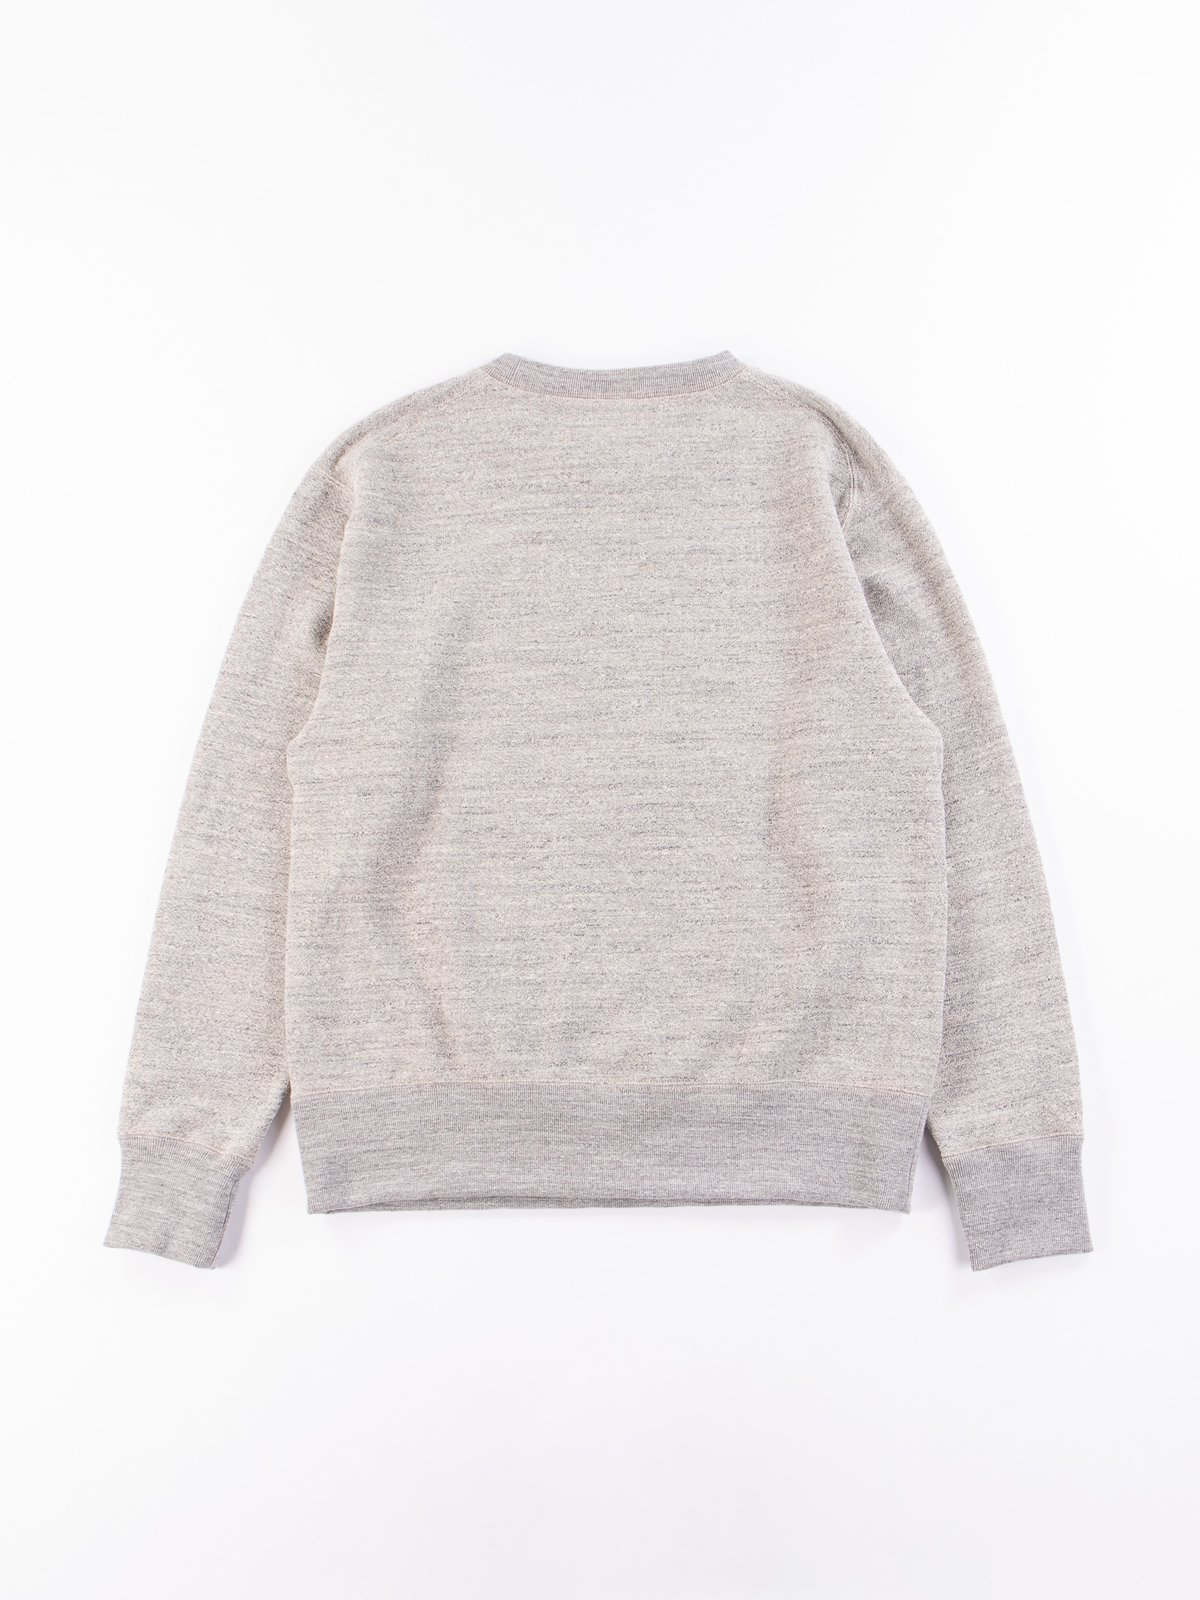 Heather Grey GG Crewneck Sweat - Image 6